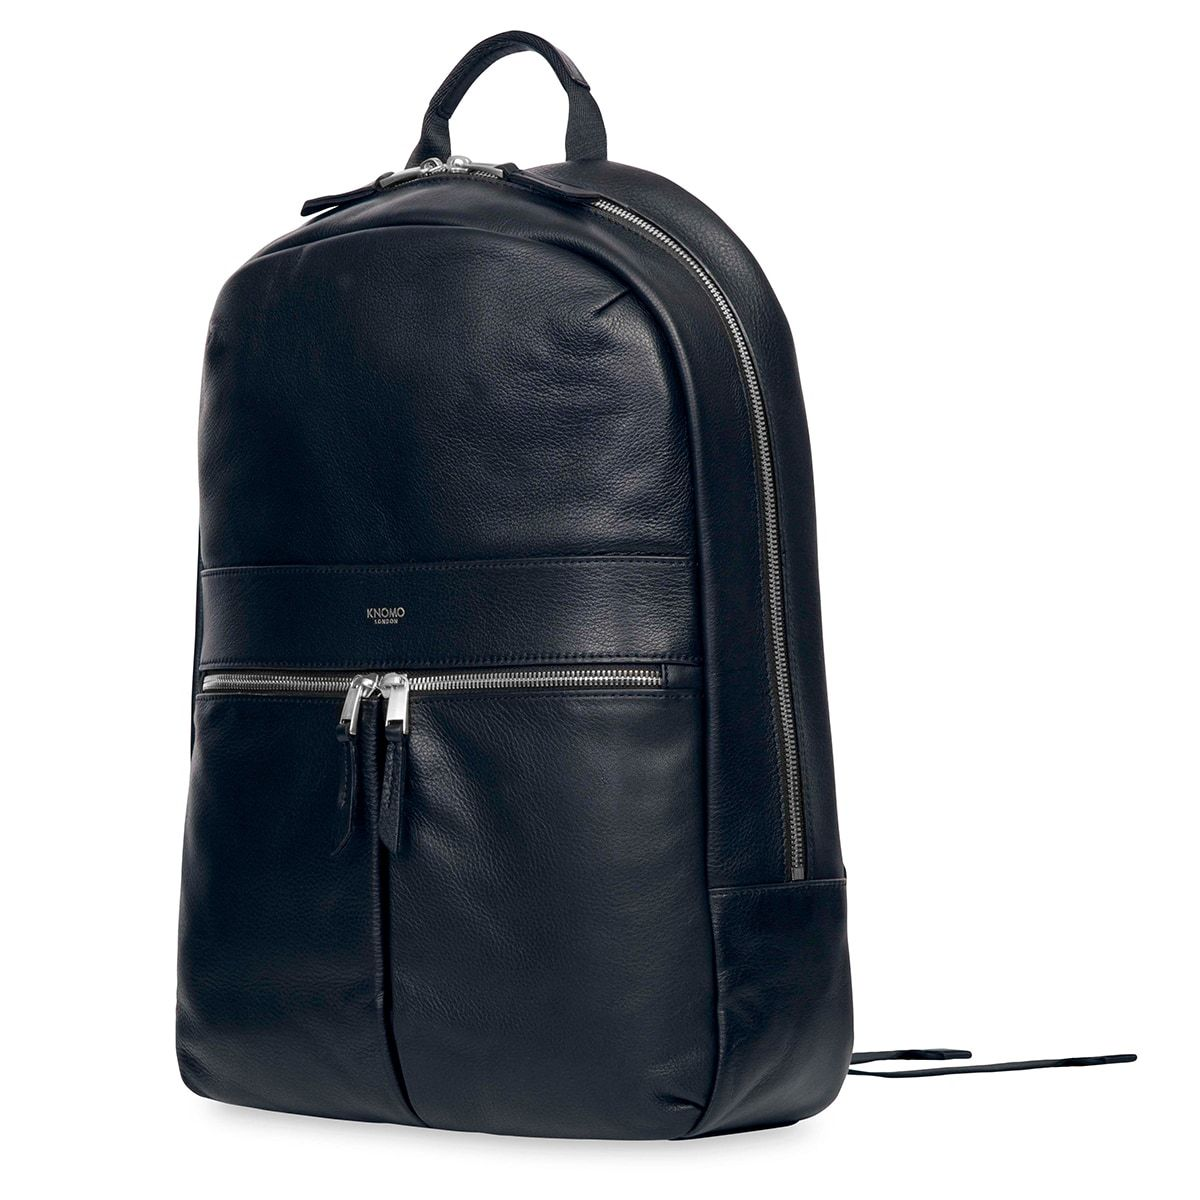 "KNOMO Beaux Leather Laptop Backpack Three Quarter View 14"" -  Dark Navy Blazer 